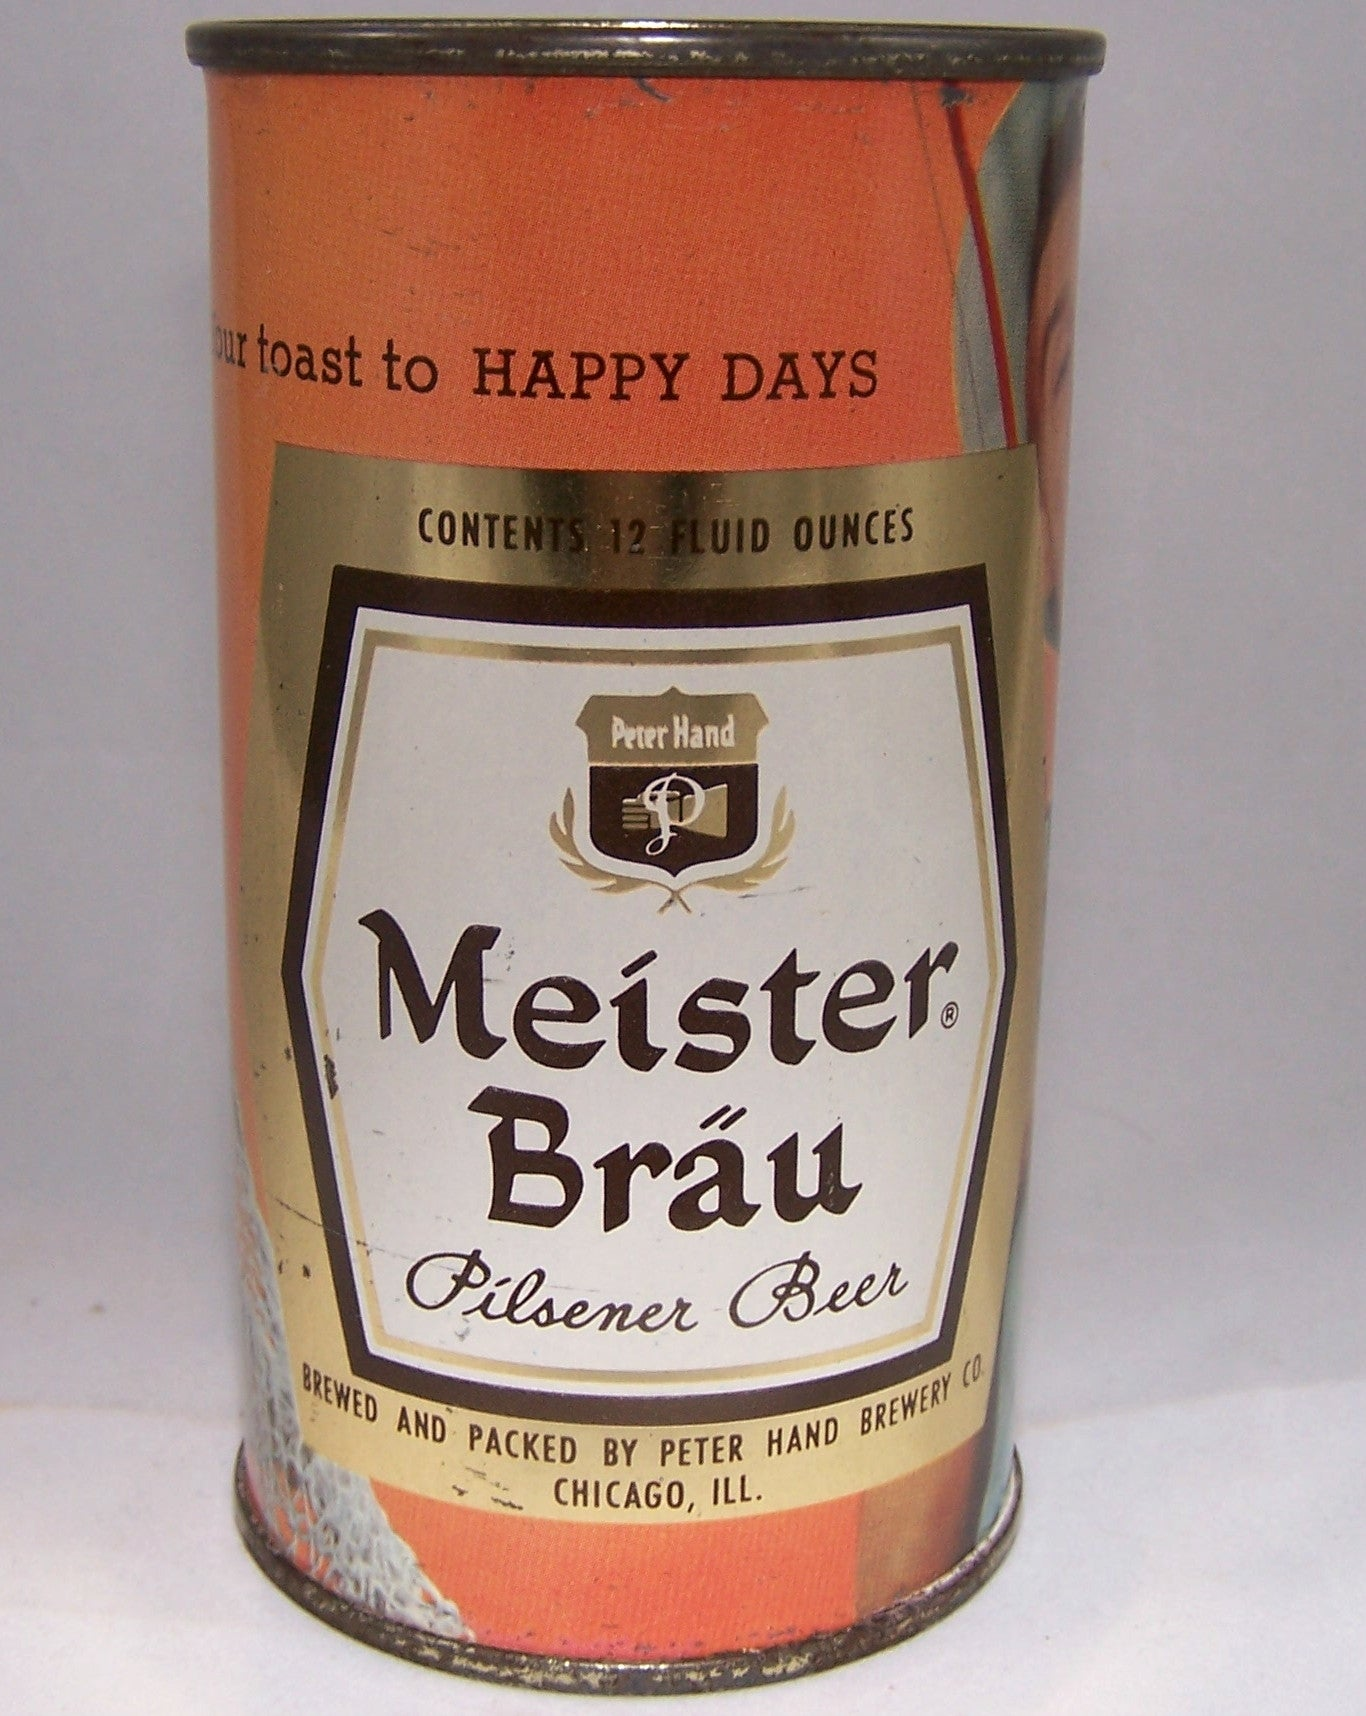 Meister Brau Happy Days Pilsener Beer (fishing) USBC80-20, Grade 1 to 1/1+ Sold on 10/10/15